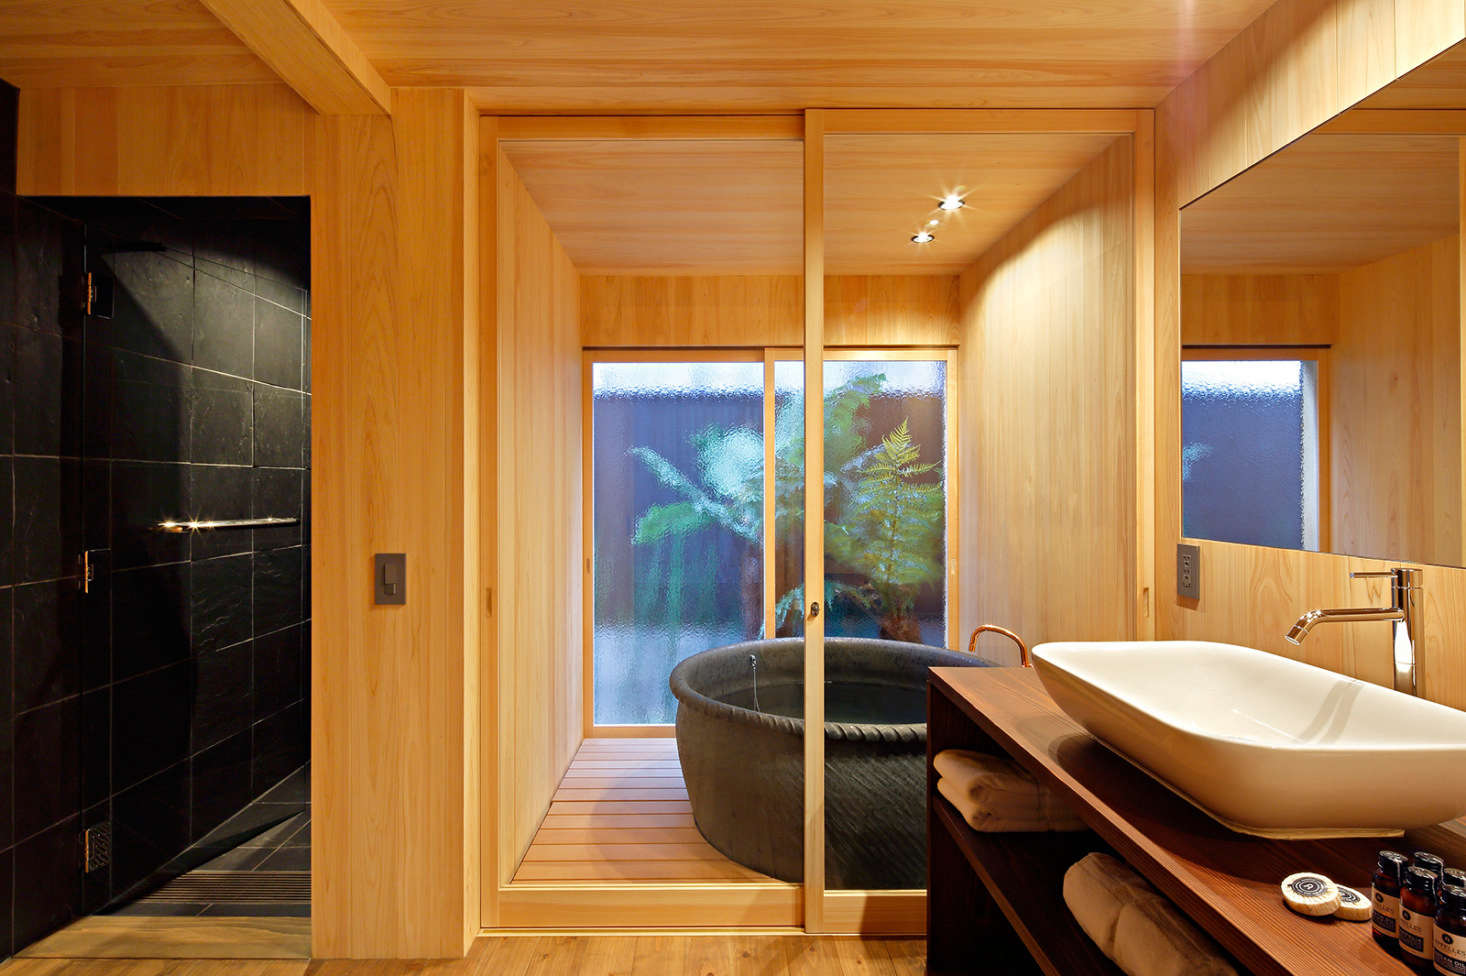 The No.5 bath with tiled shower and indoor-outdoor soaking tub.